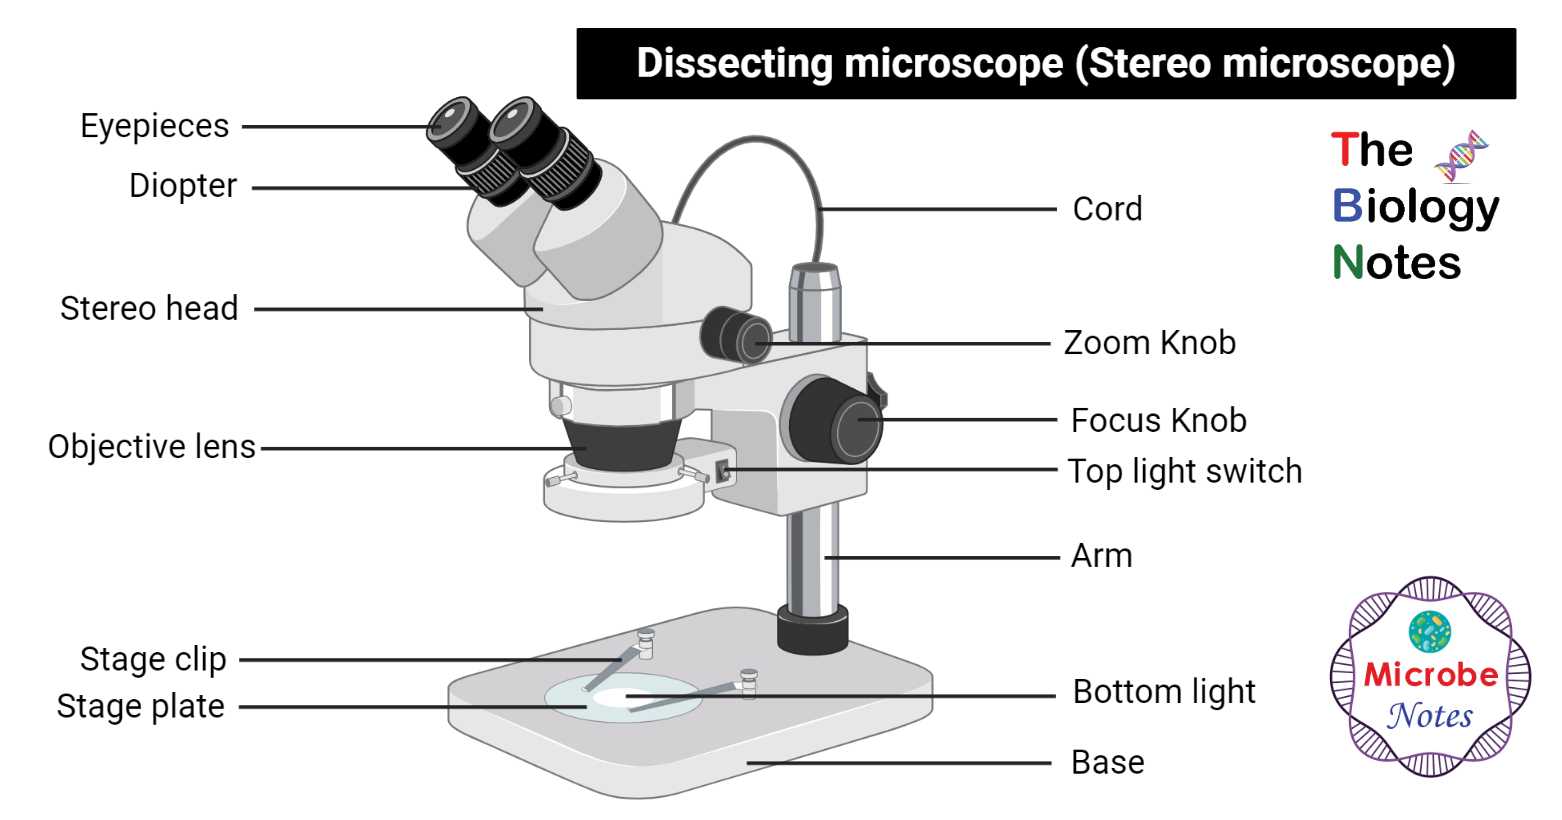 Labeled Dissecting microscope (Stereo or stereoscopic microscope)